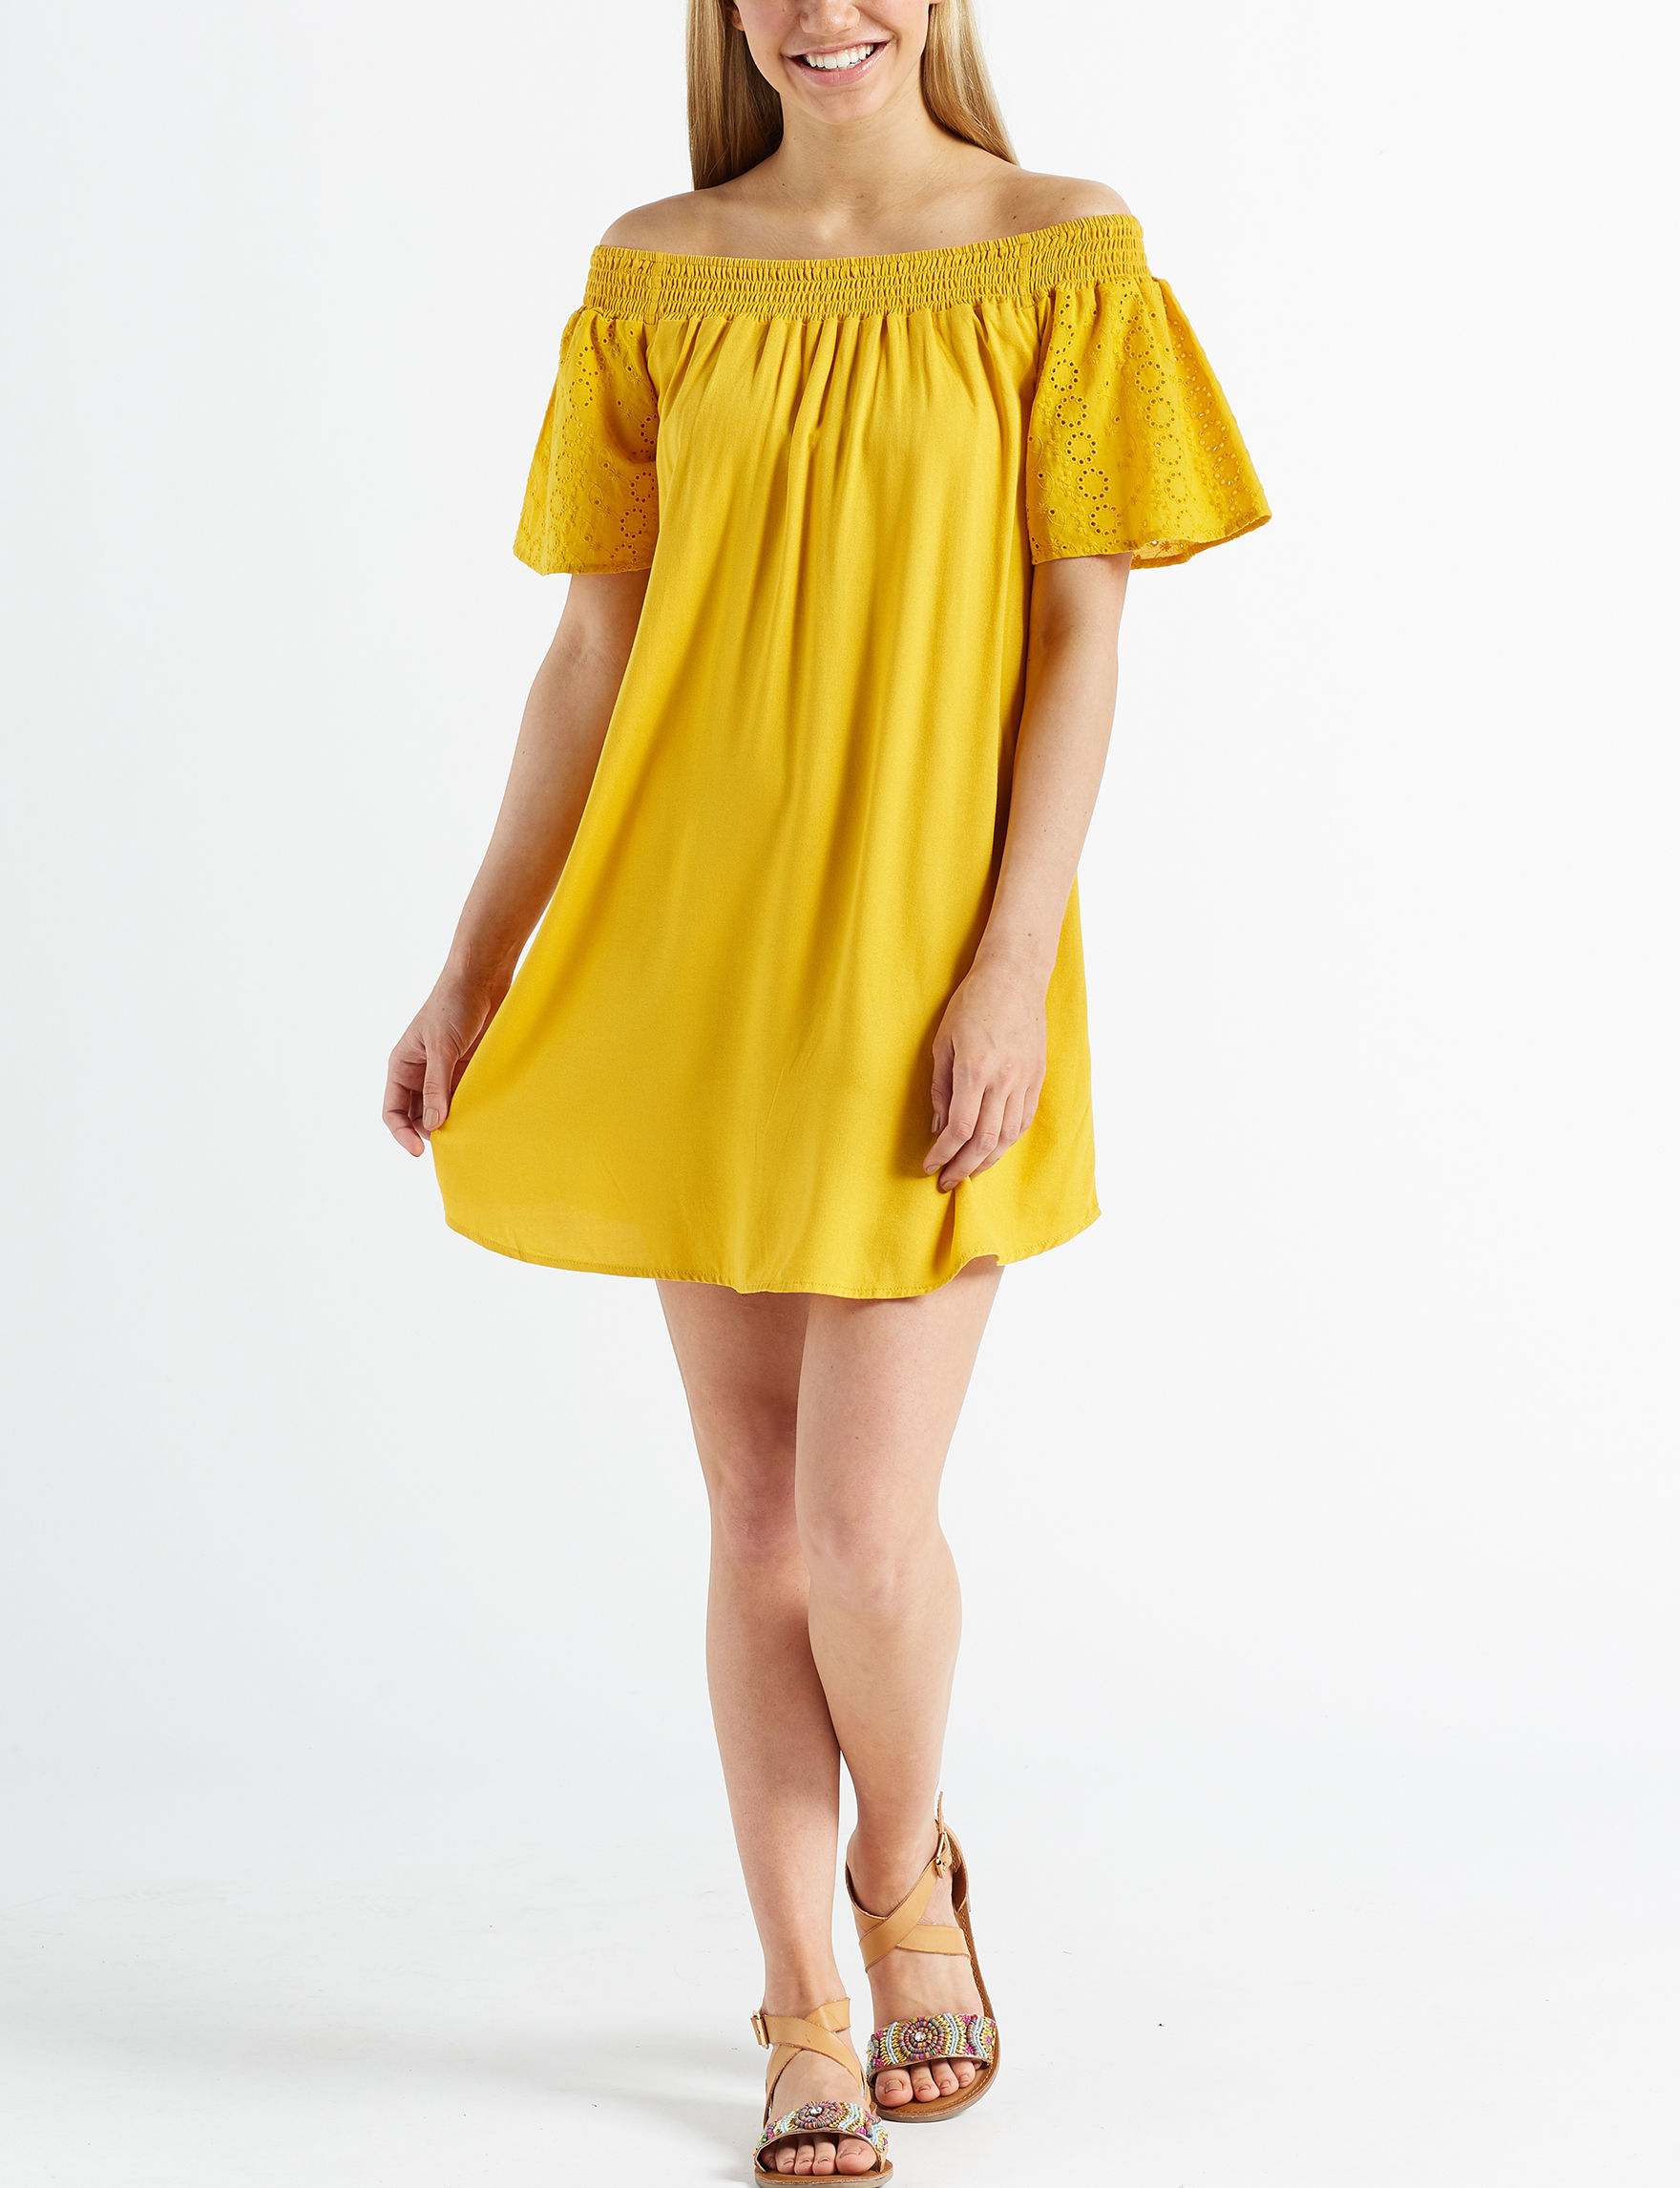 Love Fire Golden Rod Everyday & Casual Shift Dresses